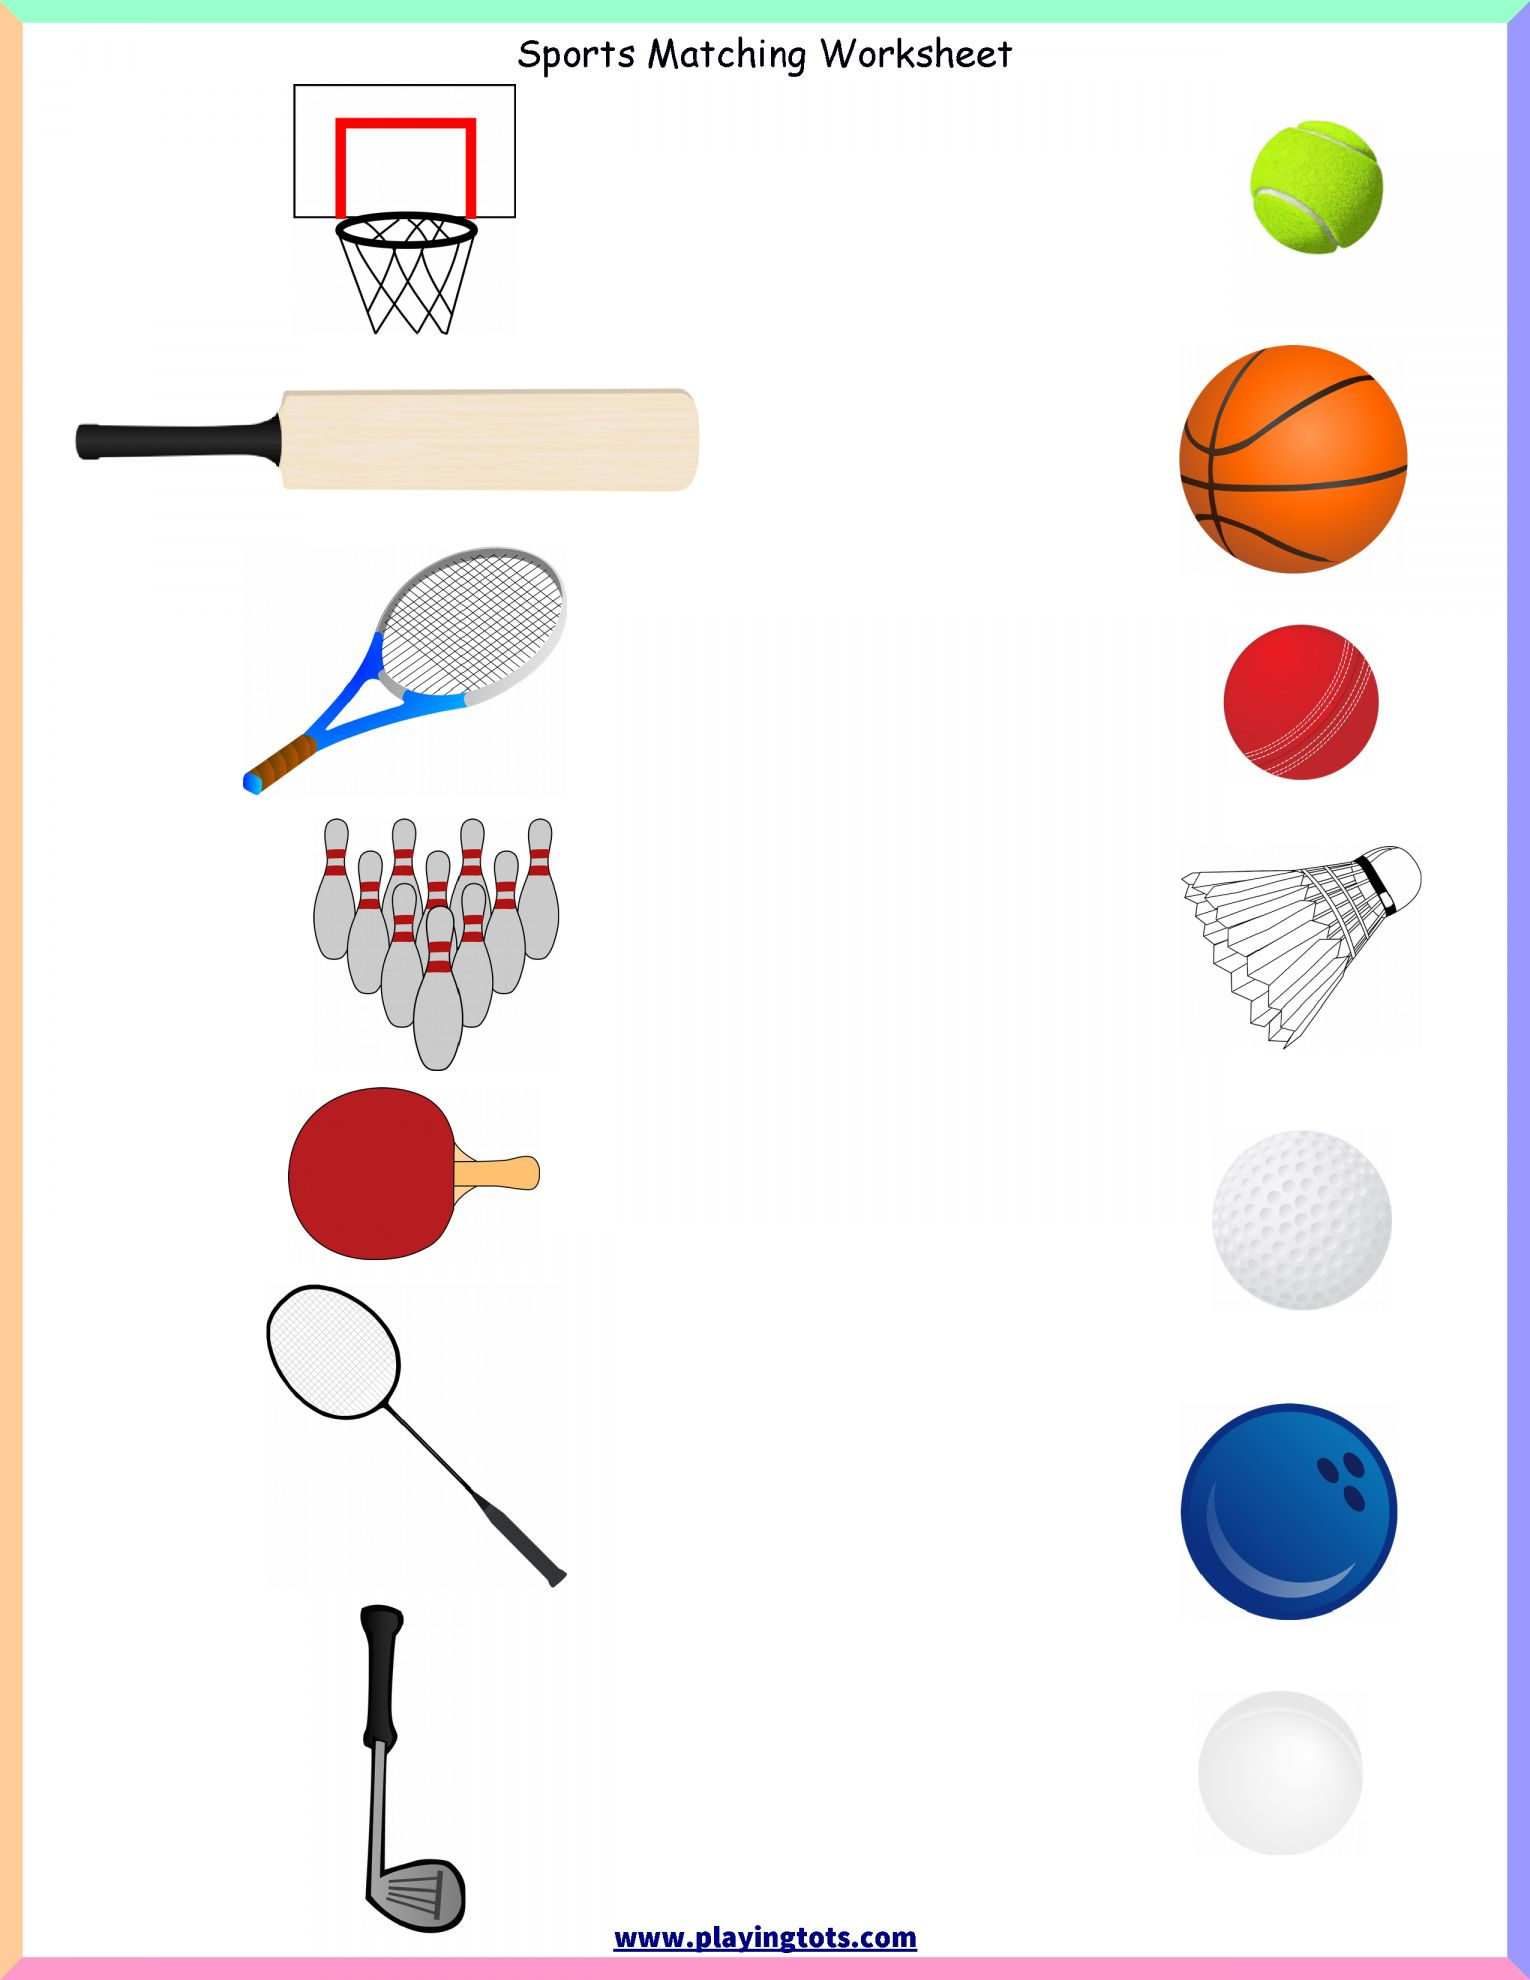 Preschool Worksheet For Ball Study And Keywords Matching